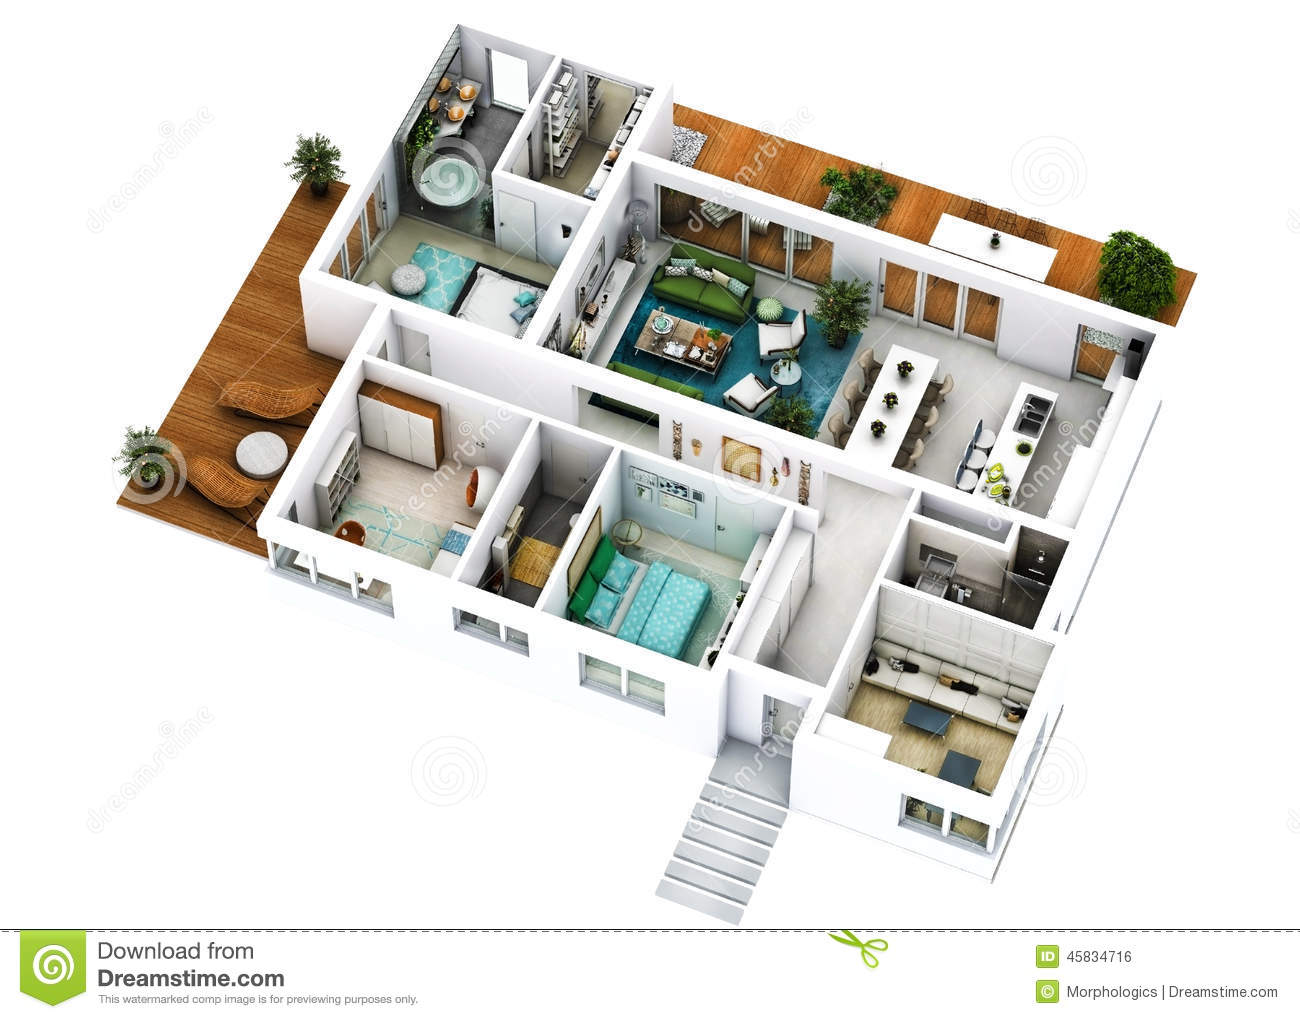 Big house plans 3d images galleries for Plan des villas modernes